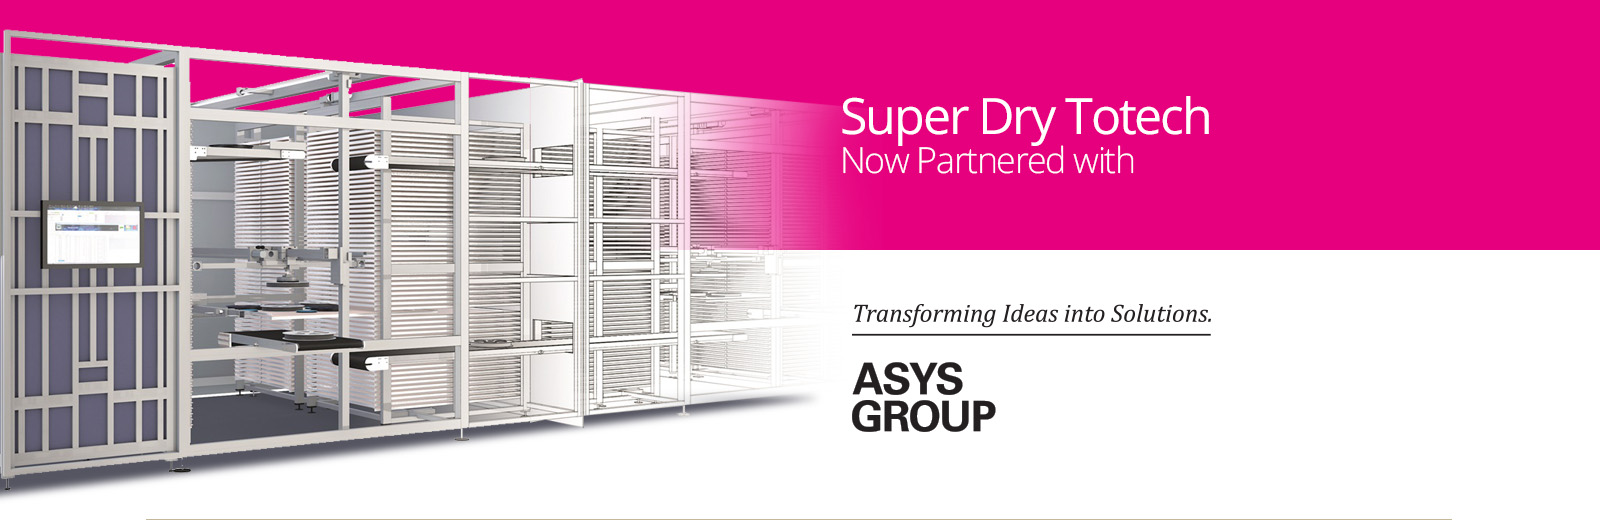 Super Dry Totech part of ASYS group